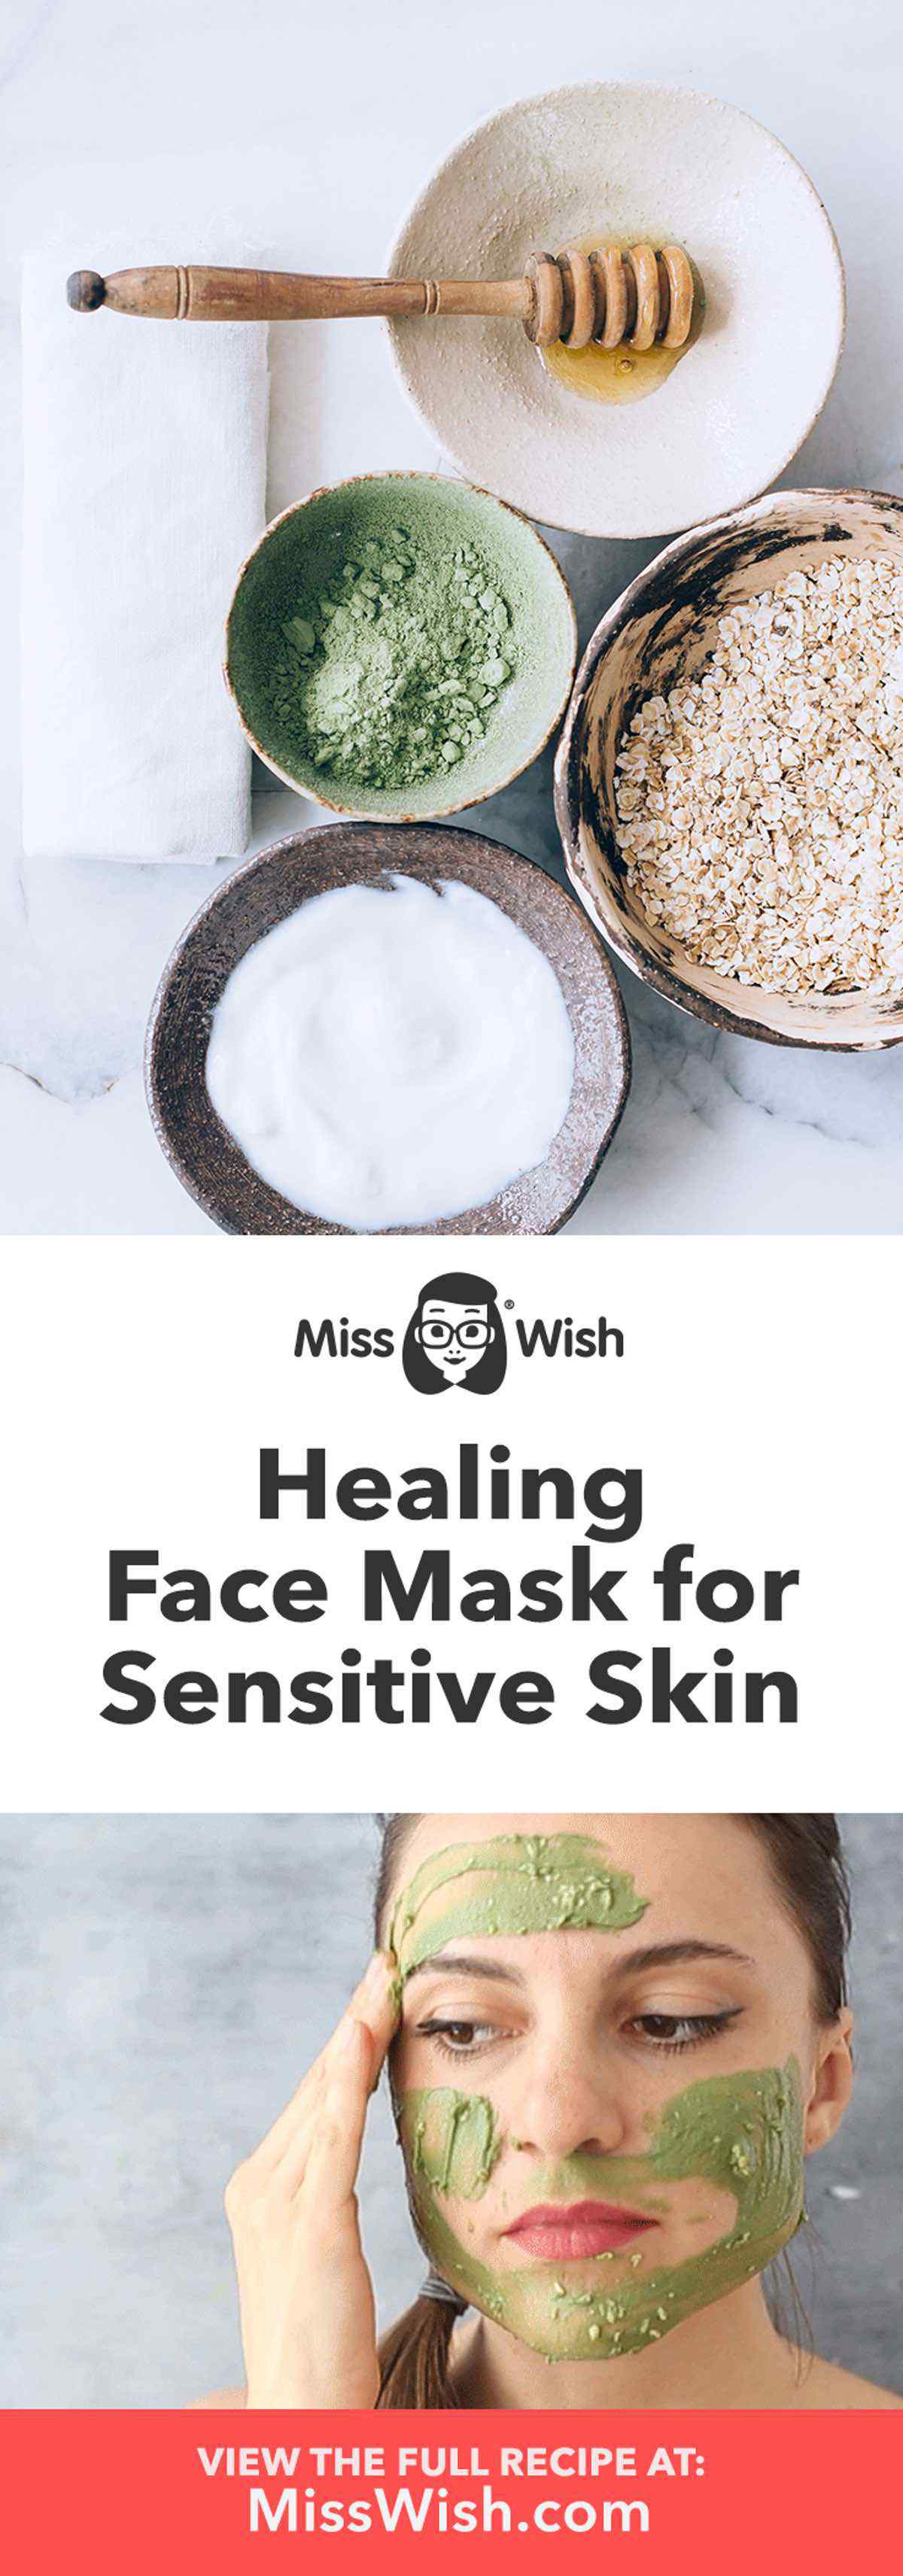 Healing DIY Face Mask for People with Sensitive Skin